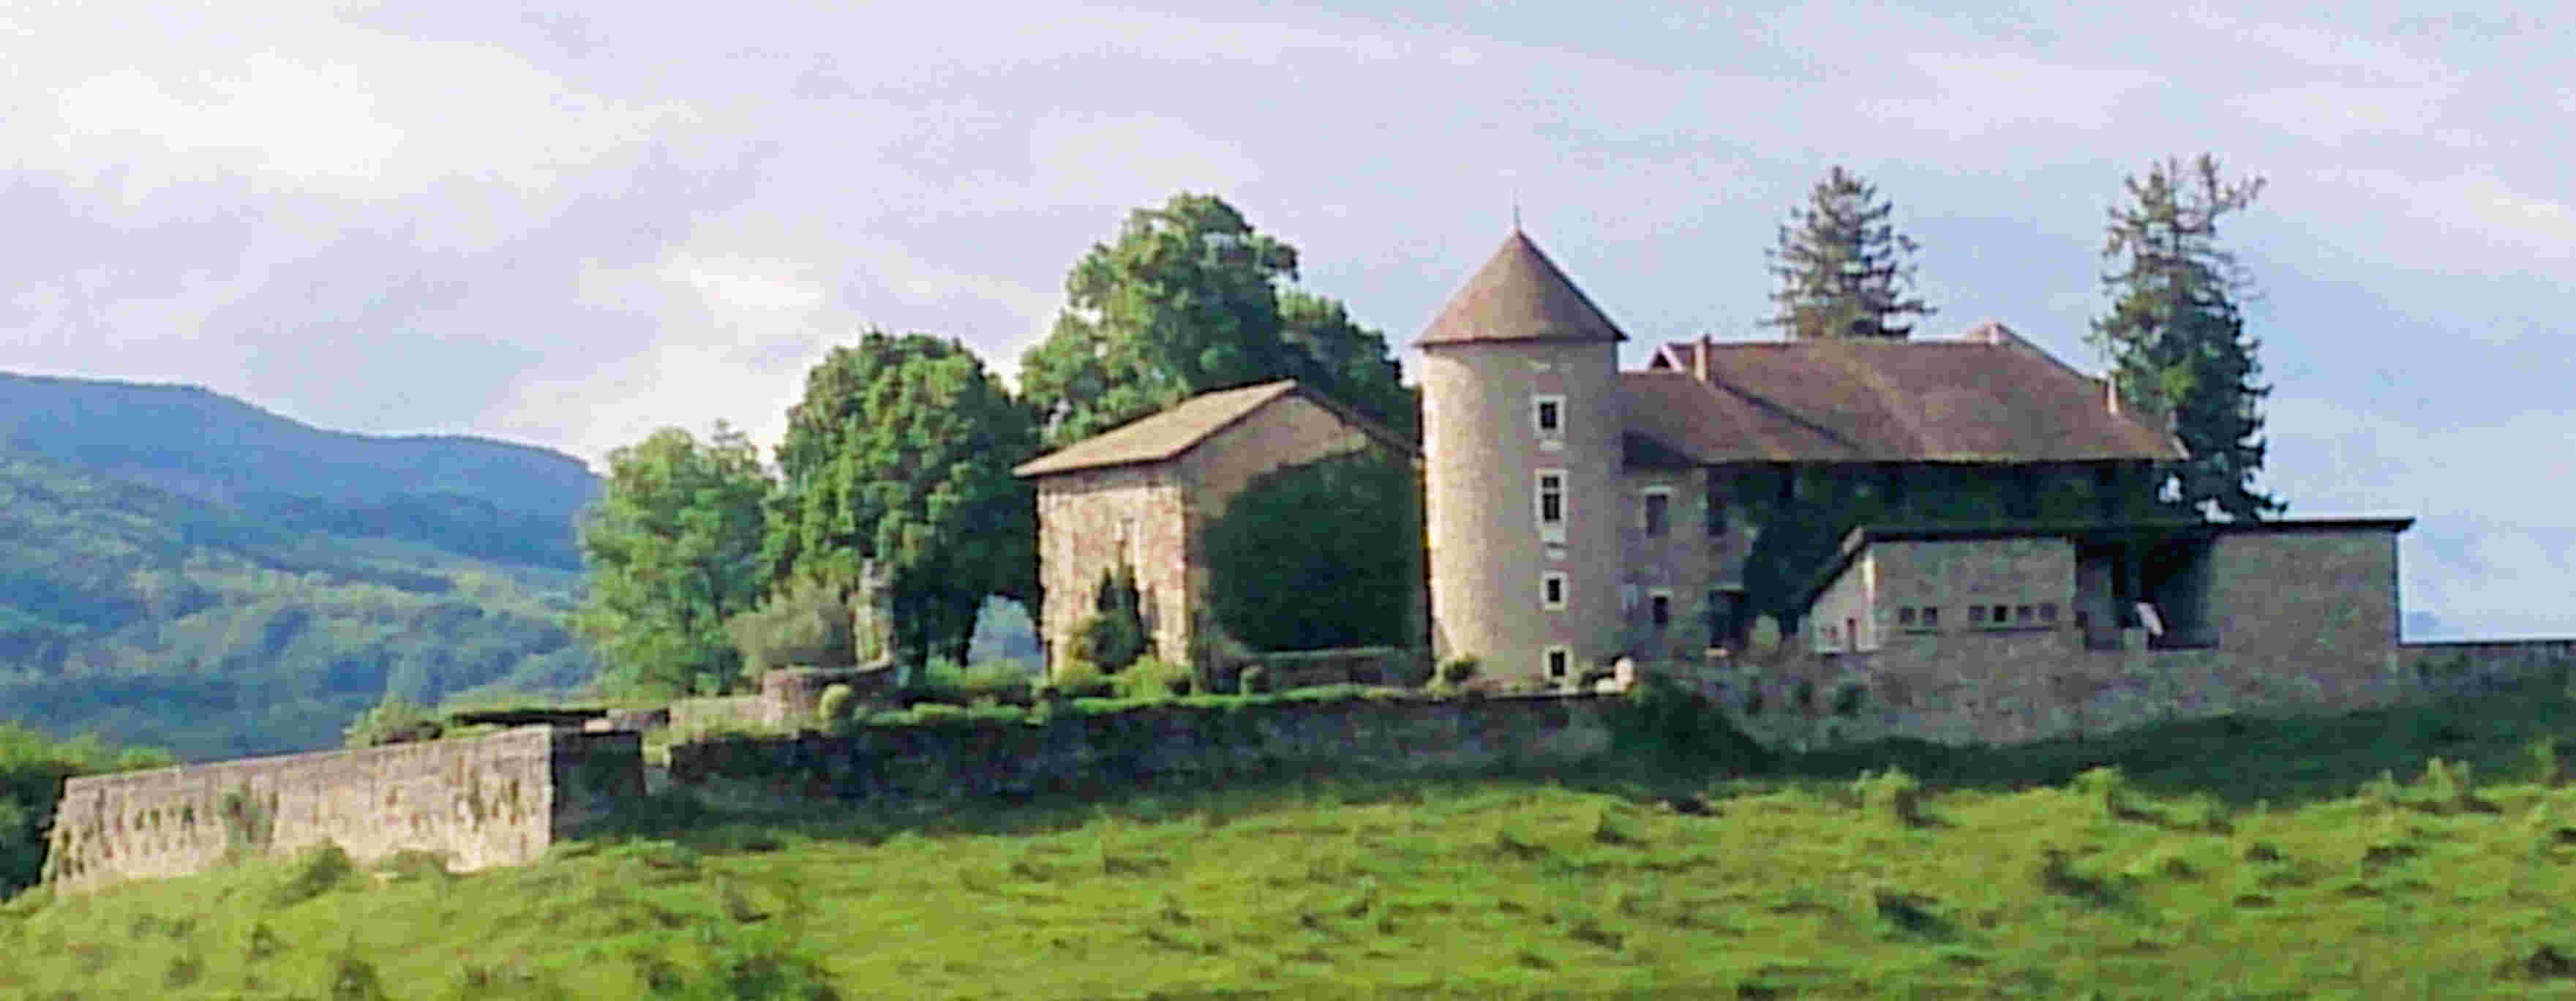 ph-160520-a-d-gresi-tour-avallon-0028